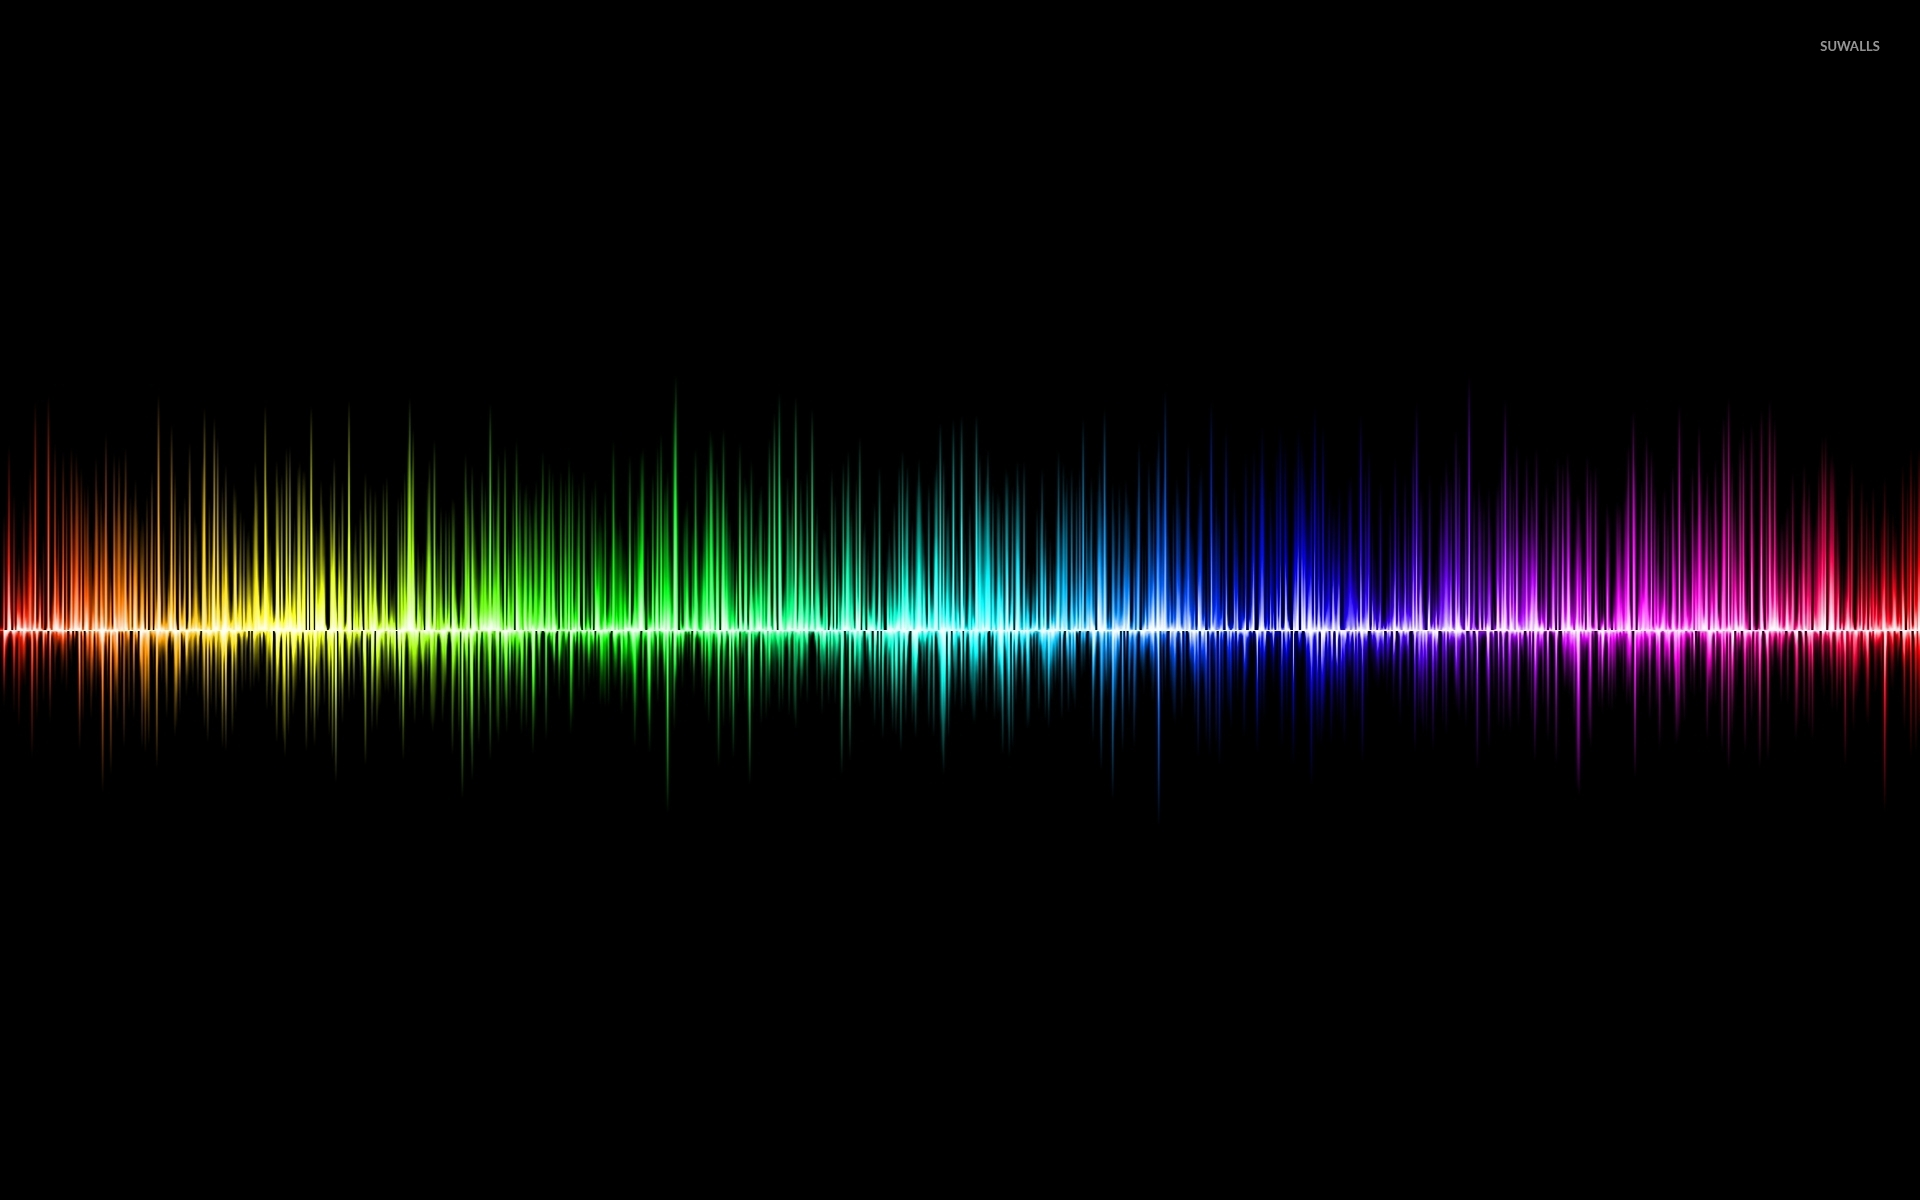 sound waves wallpaper abstract wallpapers 34031